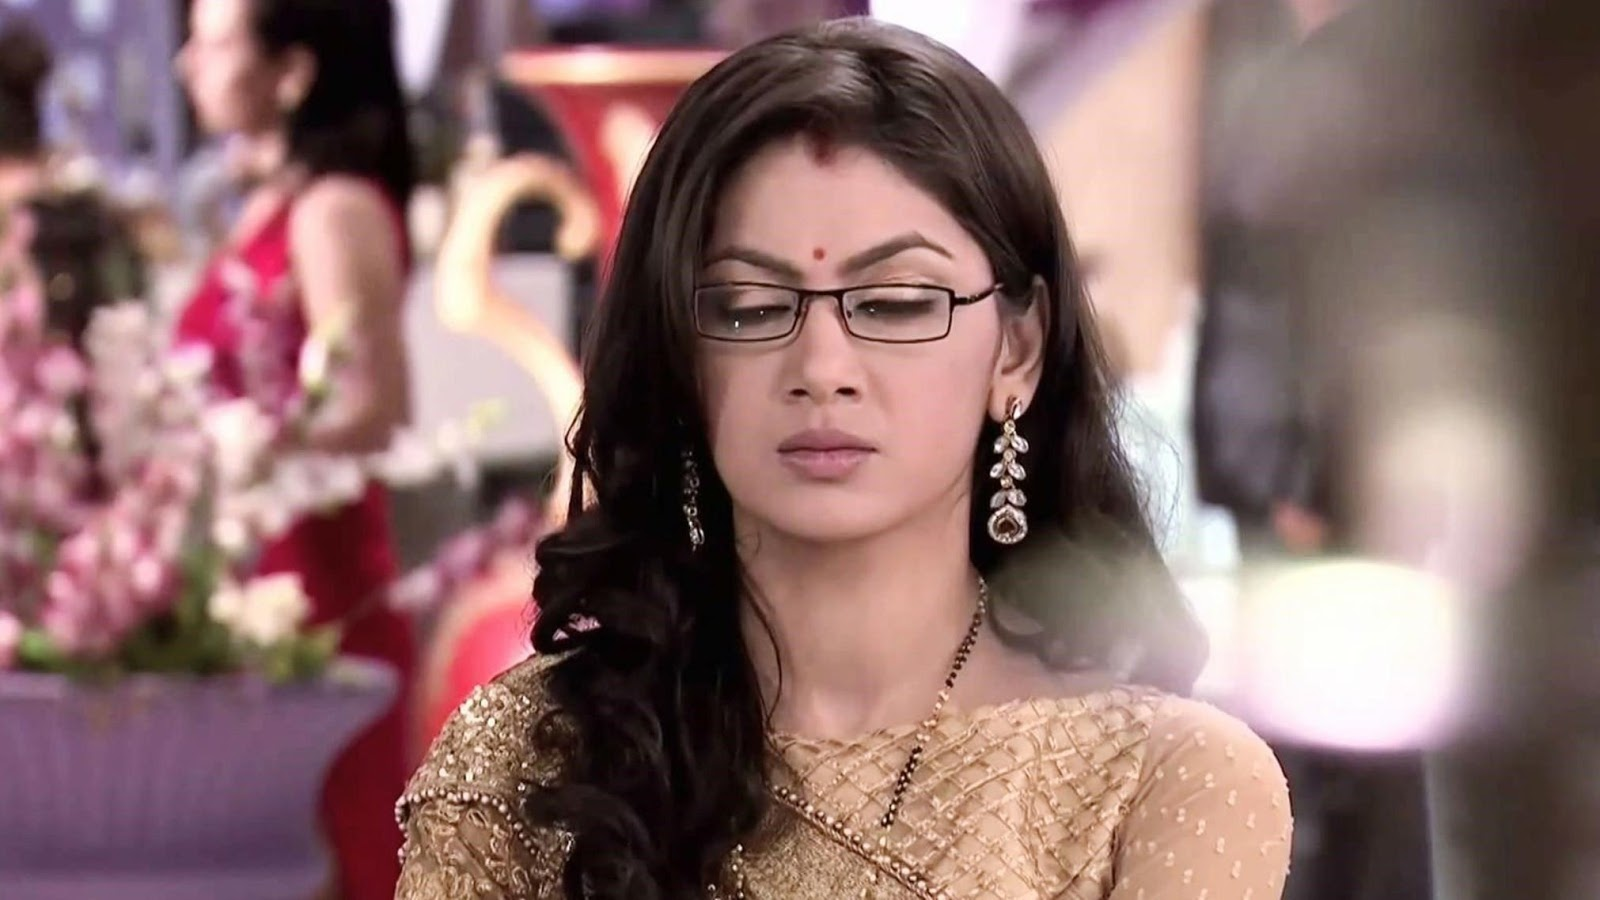 pragya sedih bingung bulbul bunuh diri kumkum bhagya full episode download hd